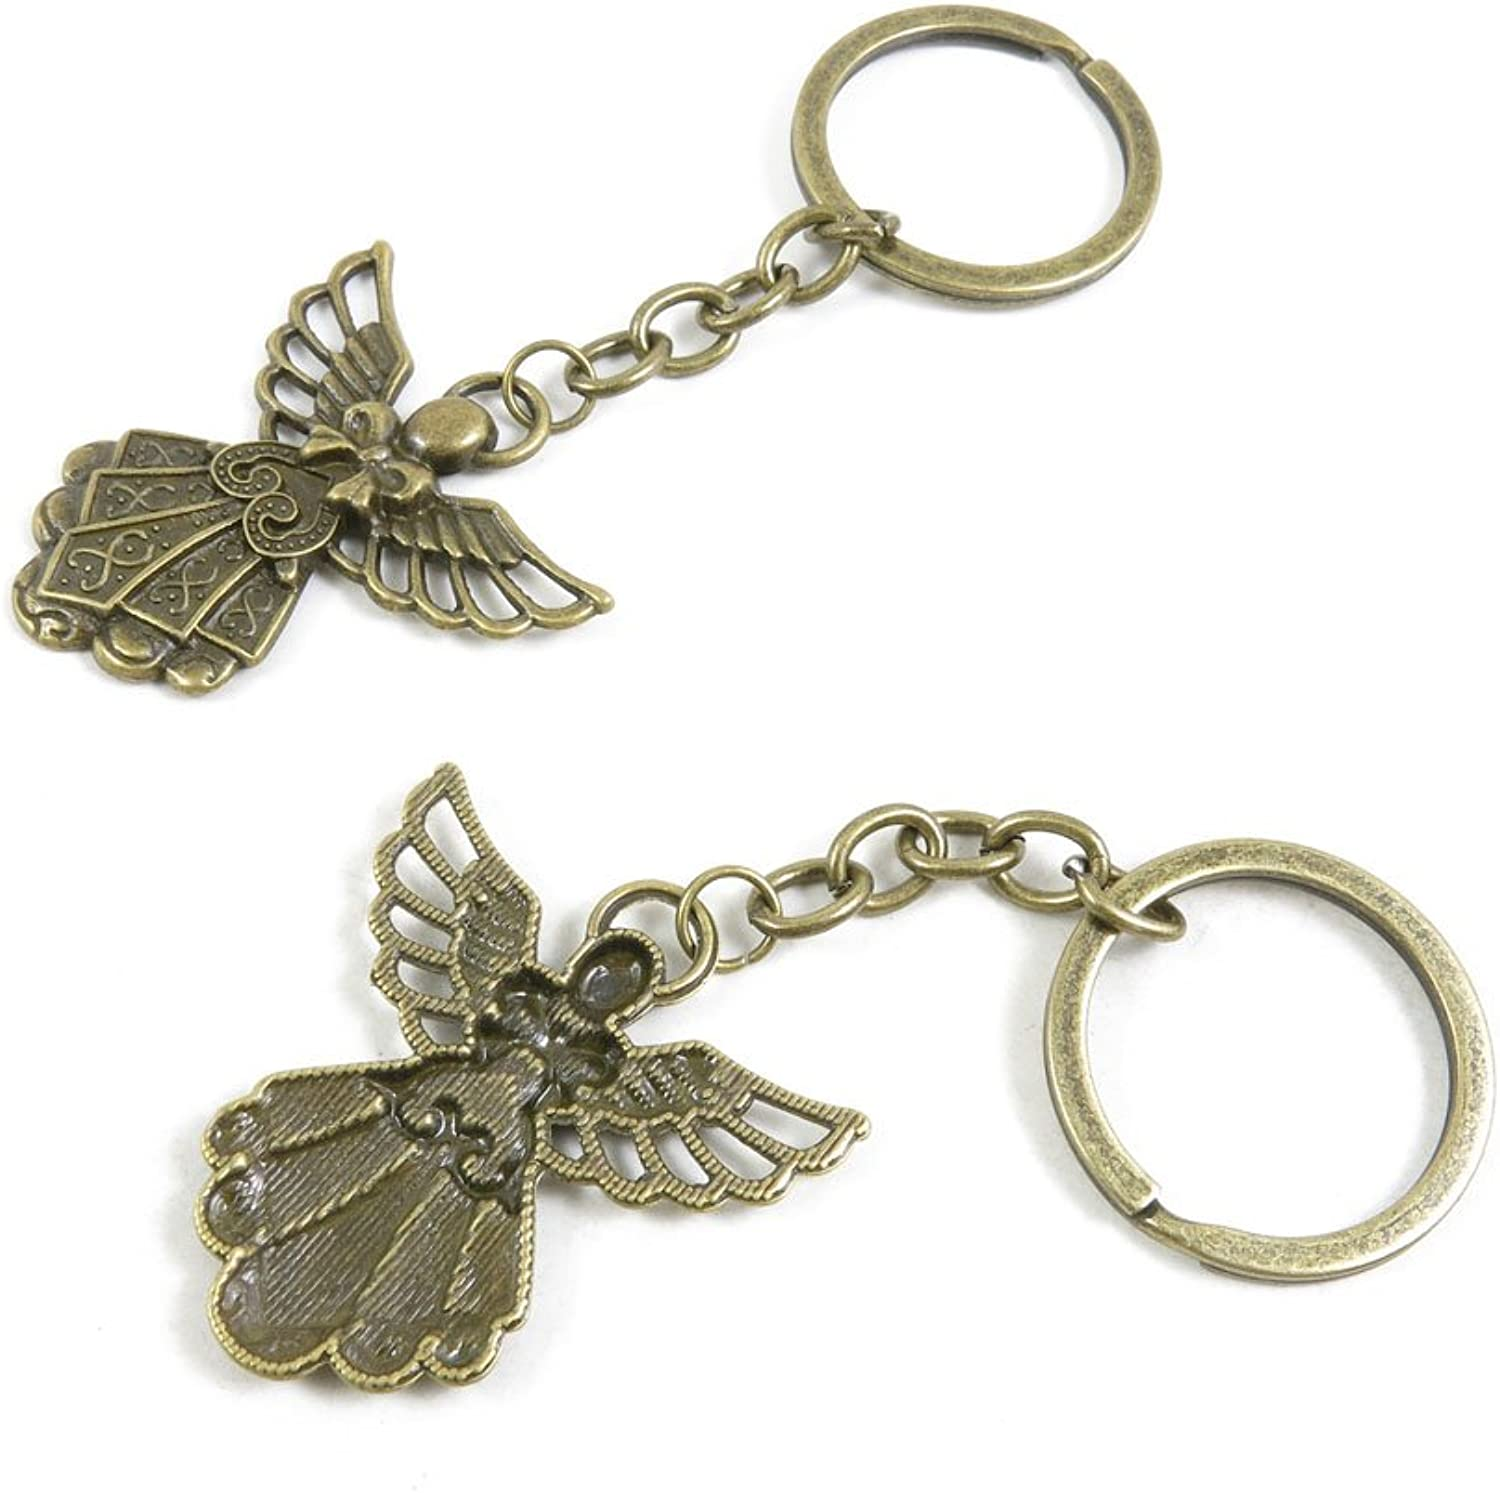 130 Pieces Fashion Jewelry Keyring Keychain Door Car Key Tag Ring Chain Supplier Supply Wholesale Bulk Lots W7AC4 Fairy Angel